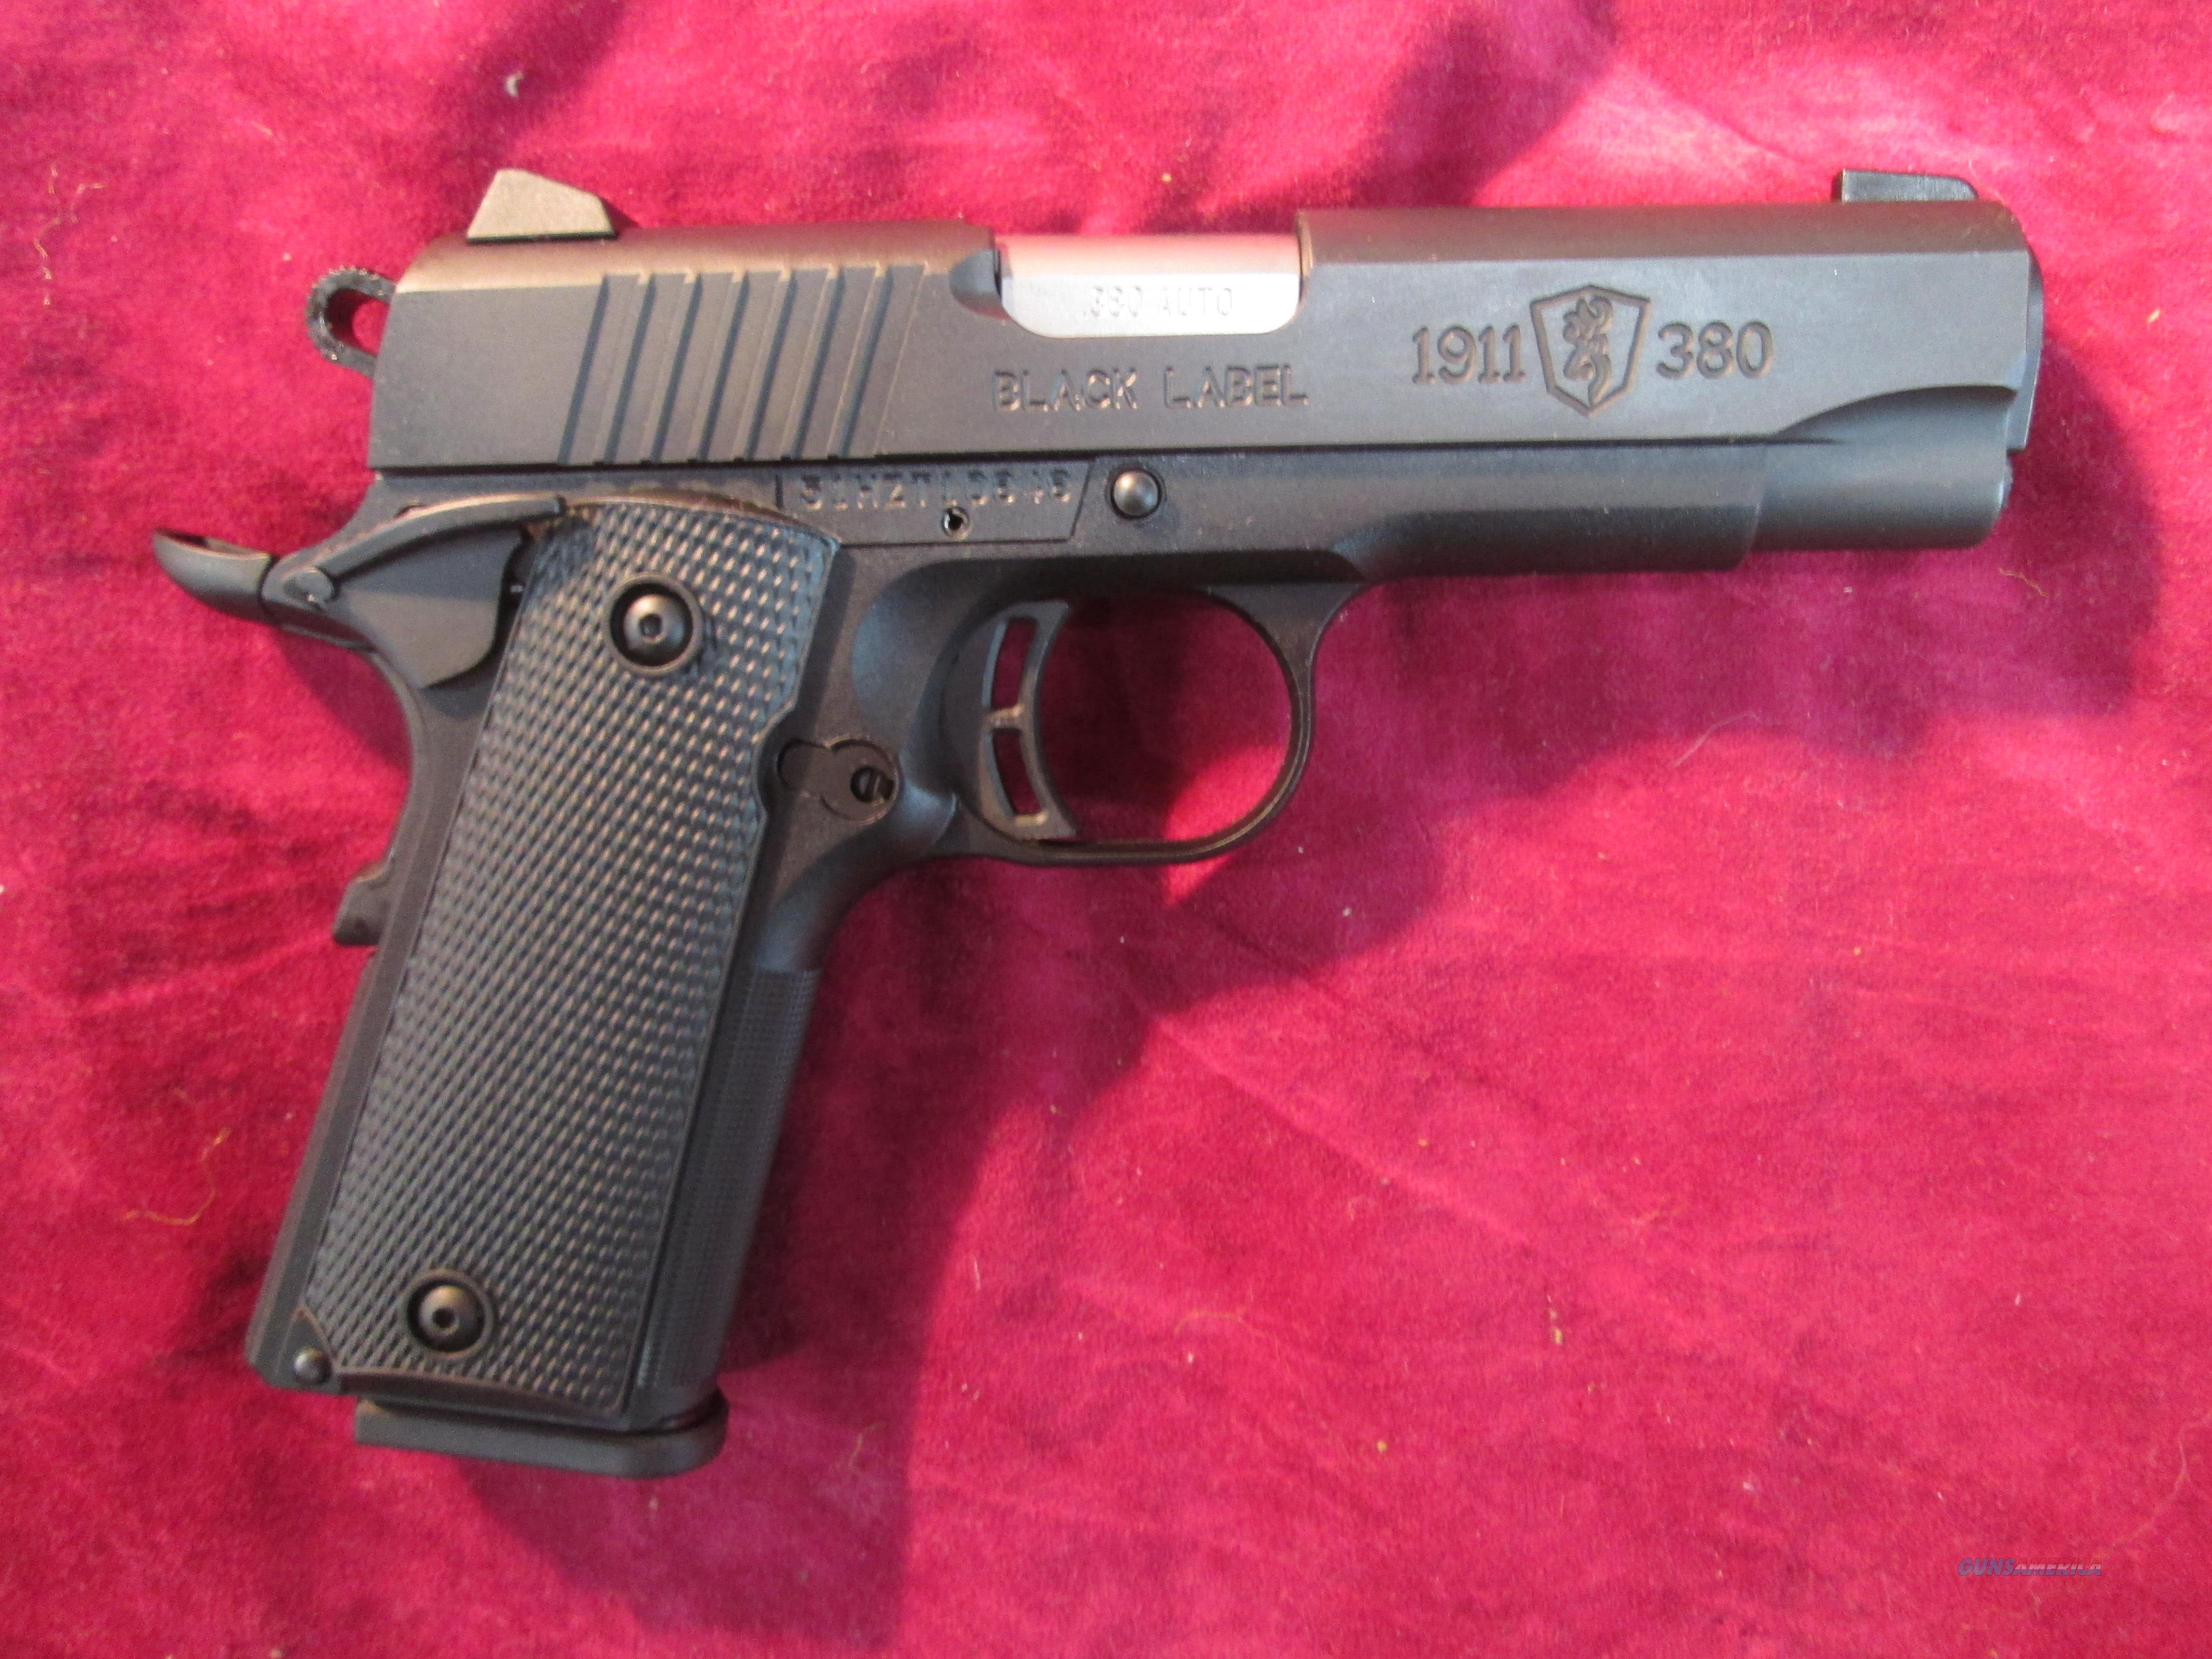 "BROWNING BLACK LABEL COMPACT 380 3.6"" NEW (051905492)  Guns > Pistols > Browning Pistols > Other Autos"